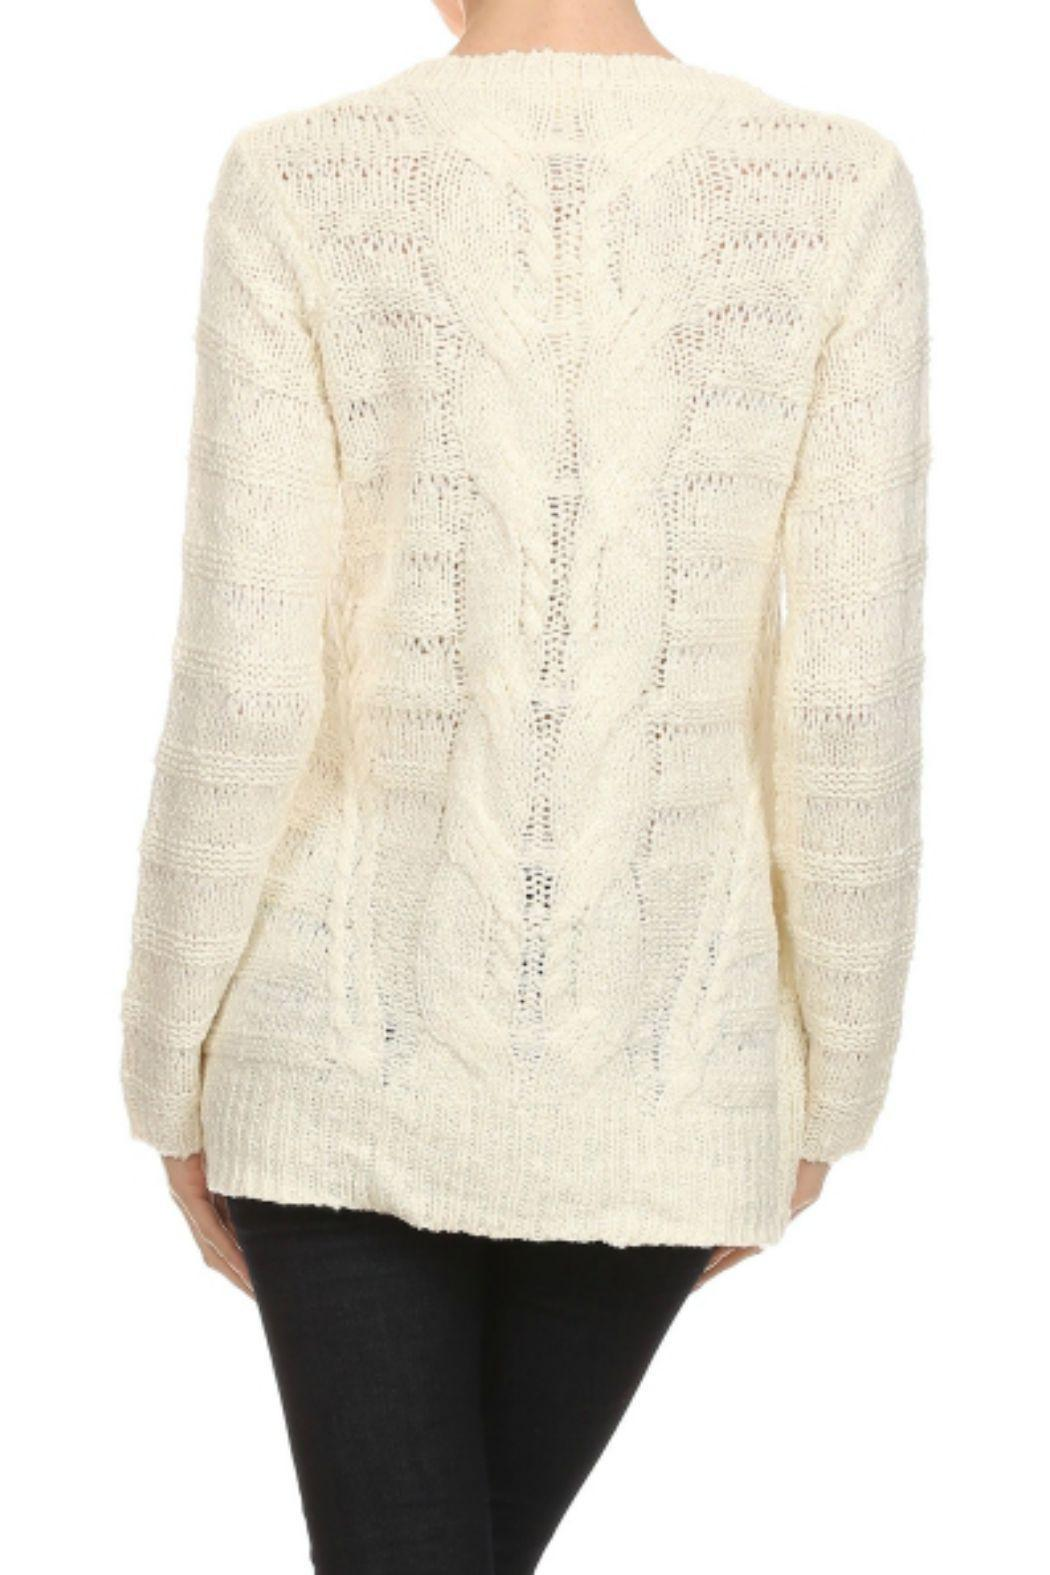 Mystree Cable Knit Sweater from Maryland by Coterie, a Boutique ...